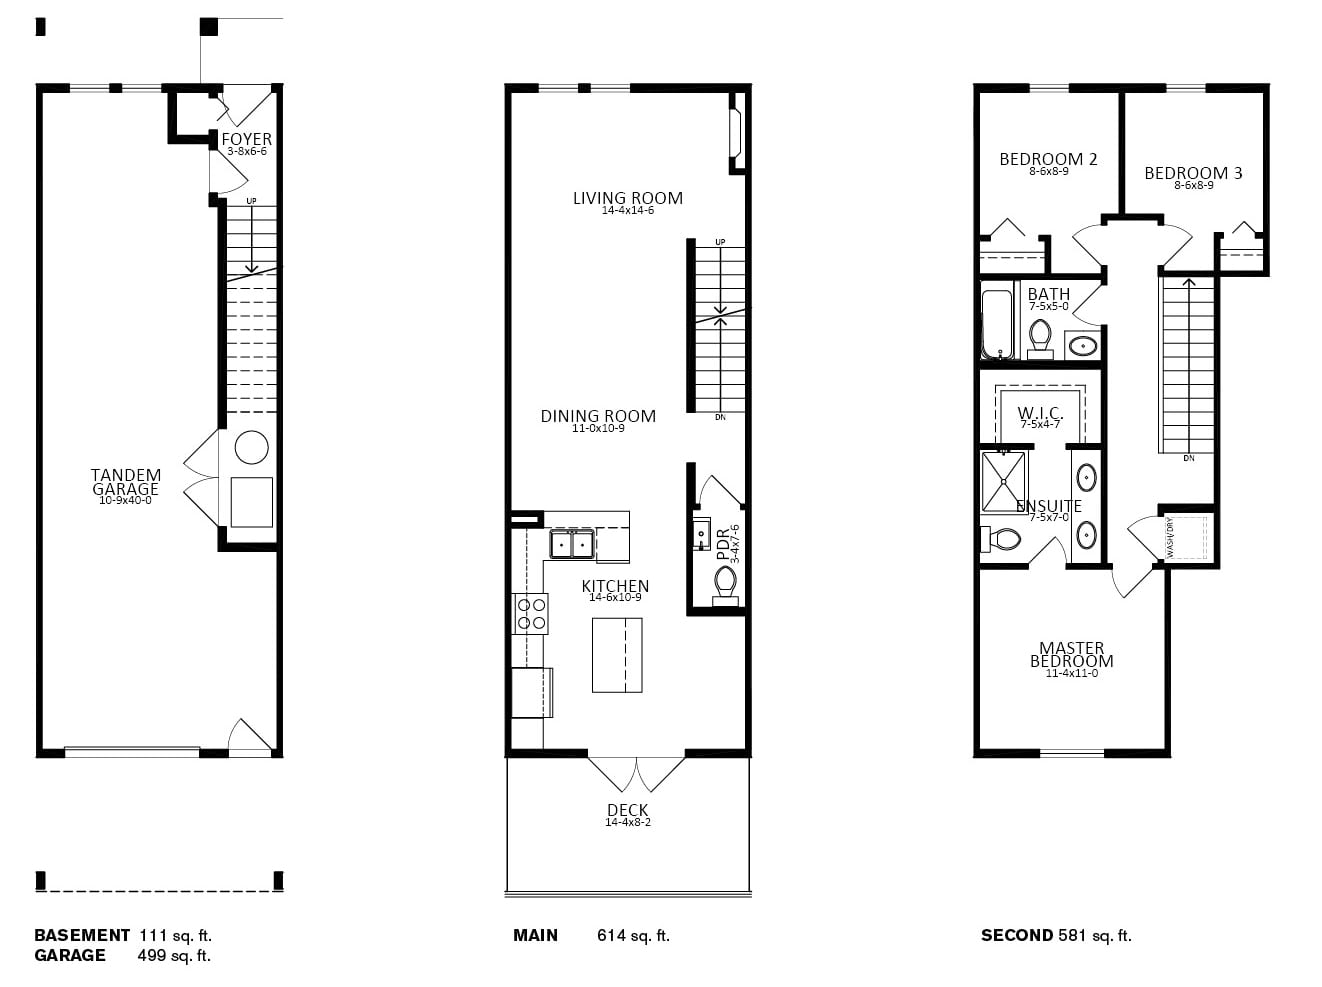 New_716_Floorplans_C1